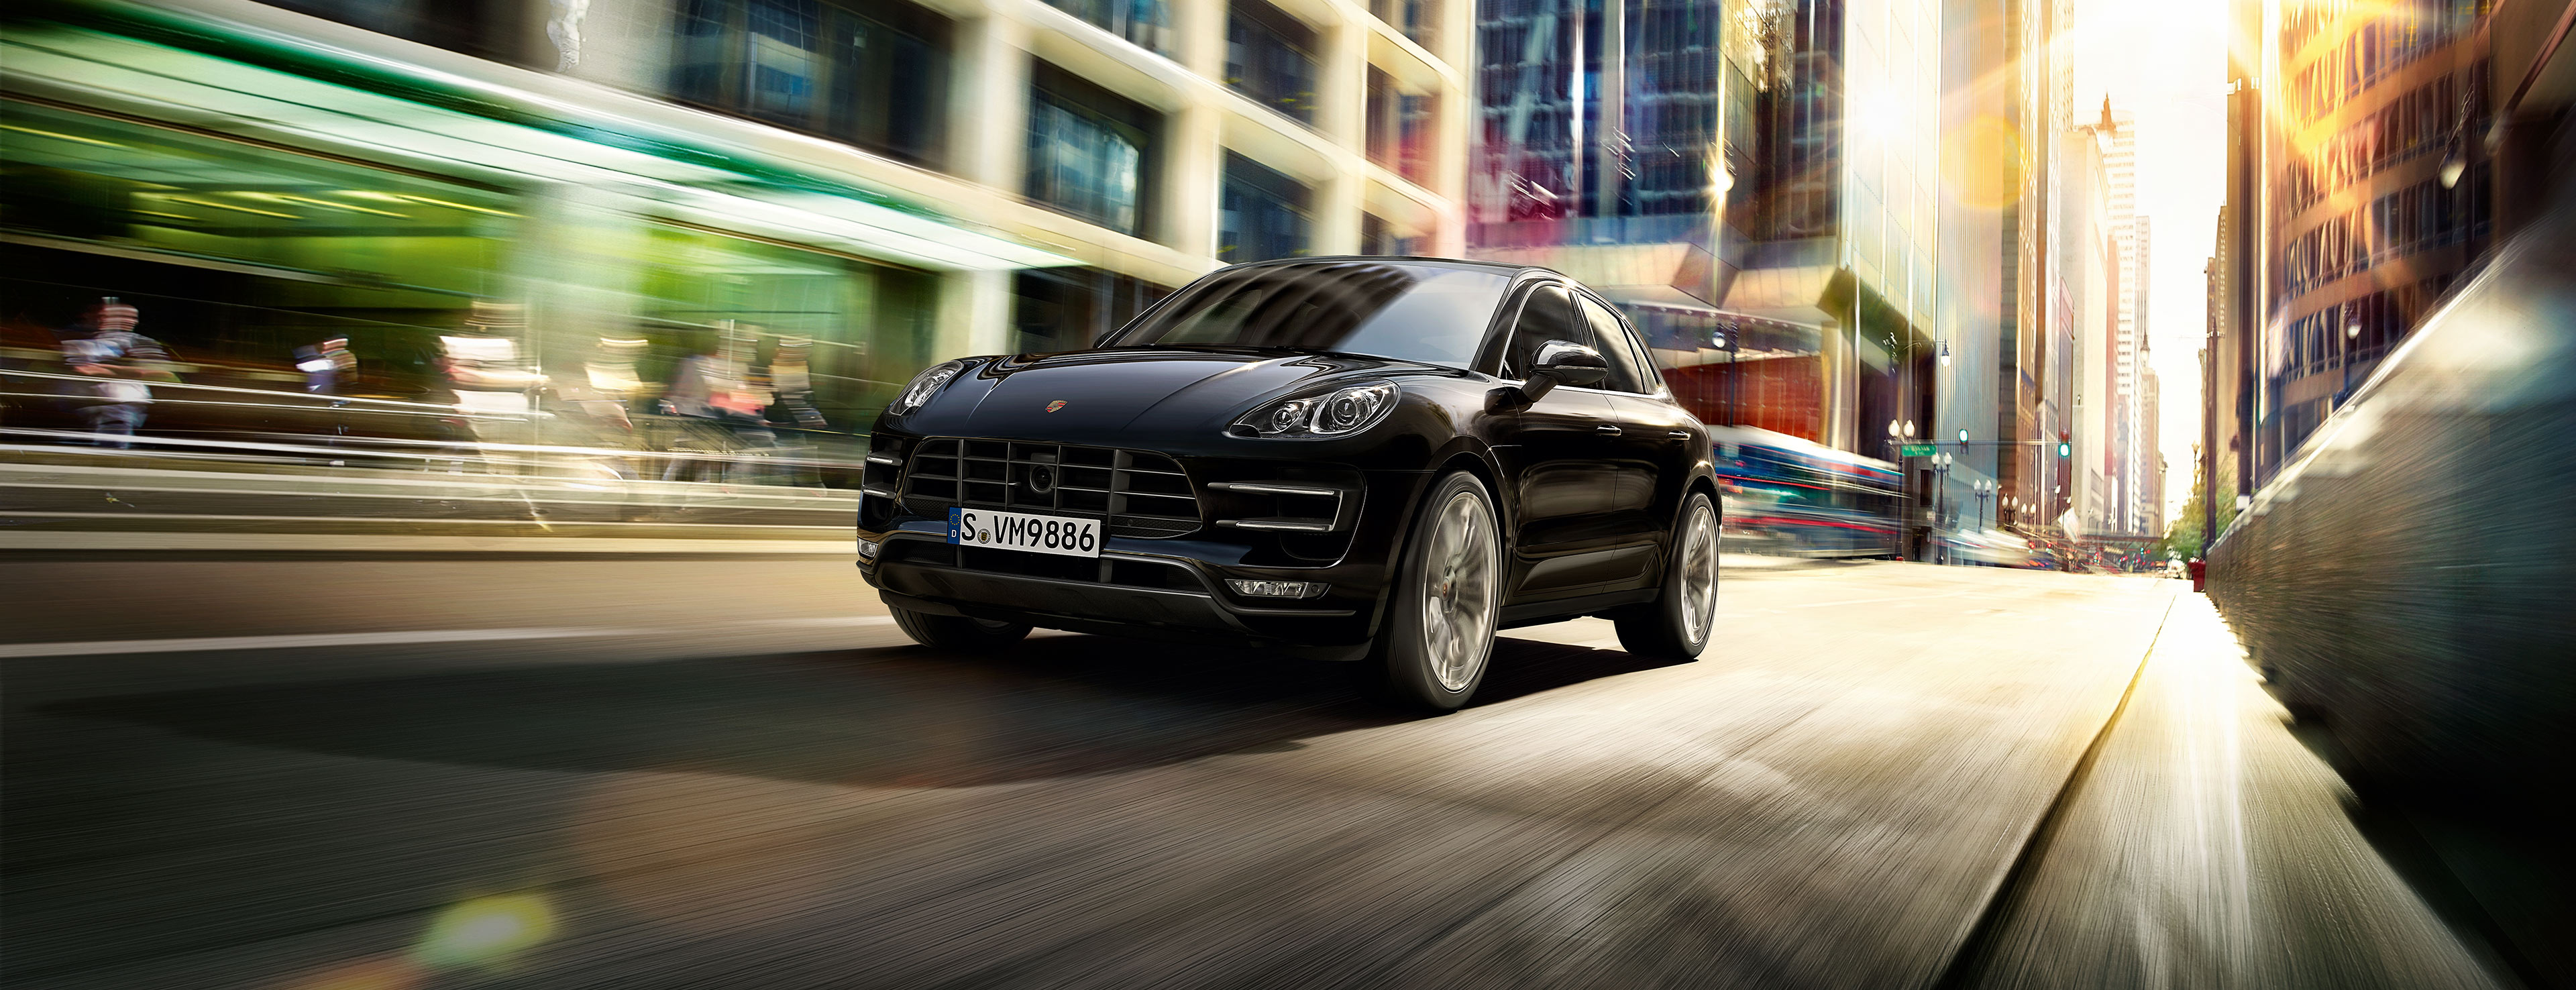 Моделі Macan Turbo